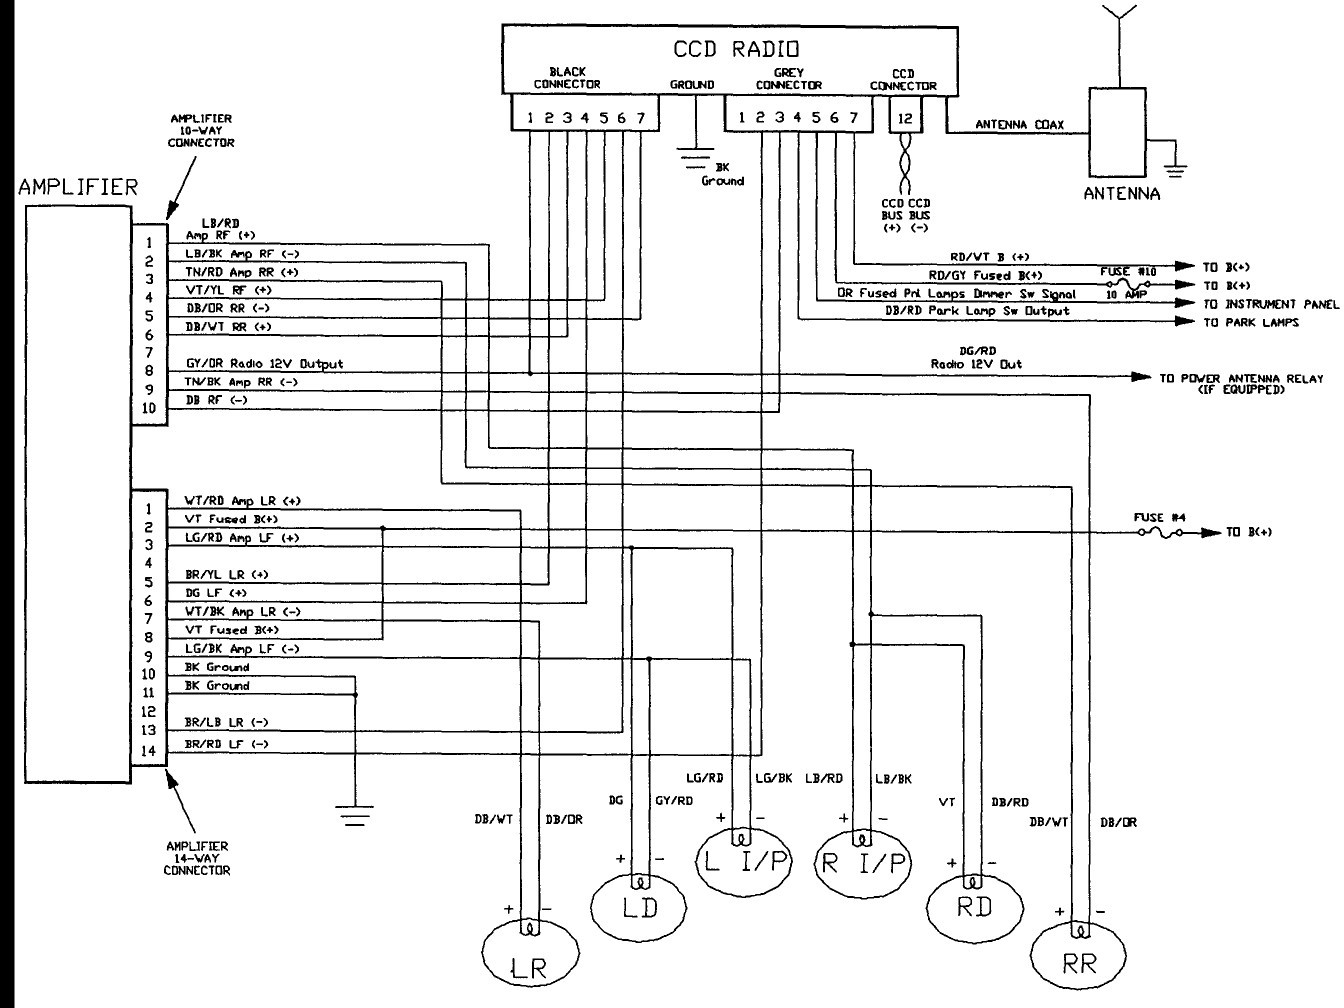 hight resolution of info whirlpool whirlpoolwrn32rwhcircuitwiringdiagramhtml wiring info whirlpool whirlpoolwrn32rwhcircuitwiringdiagramhtml